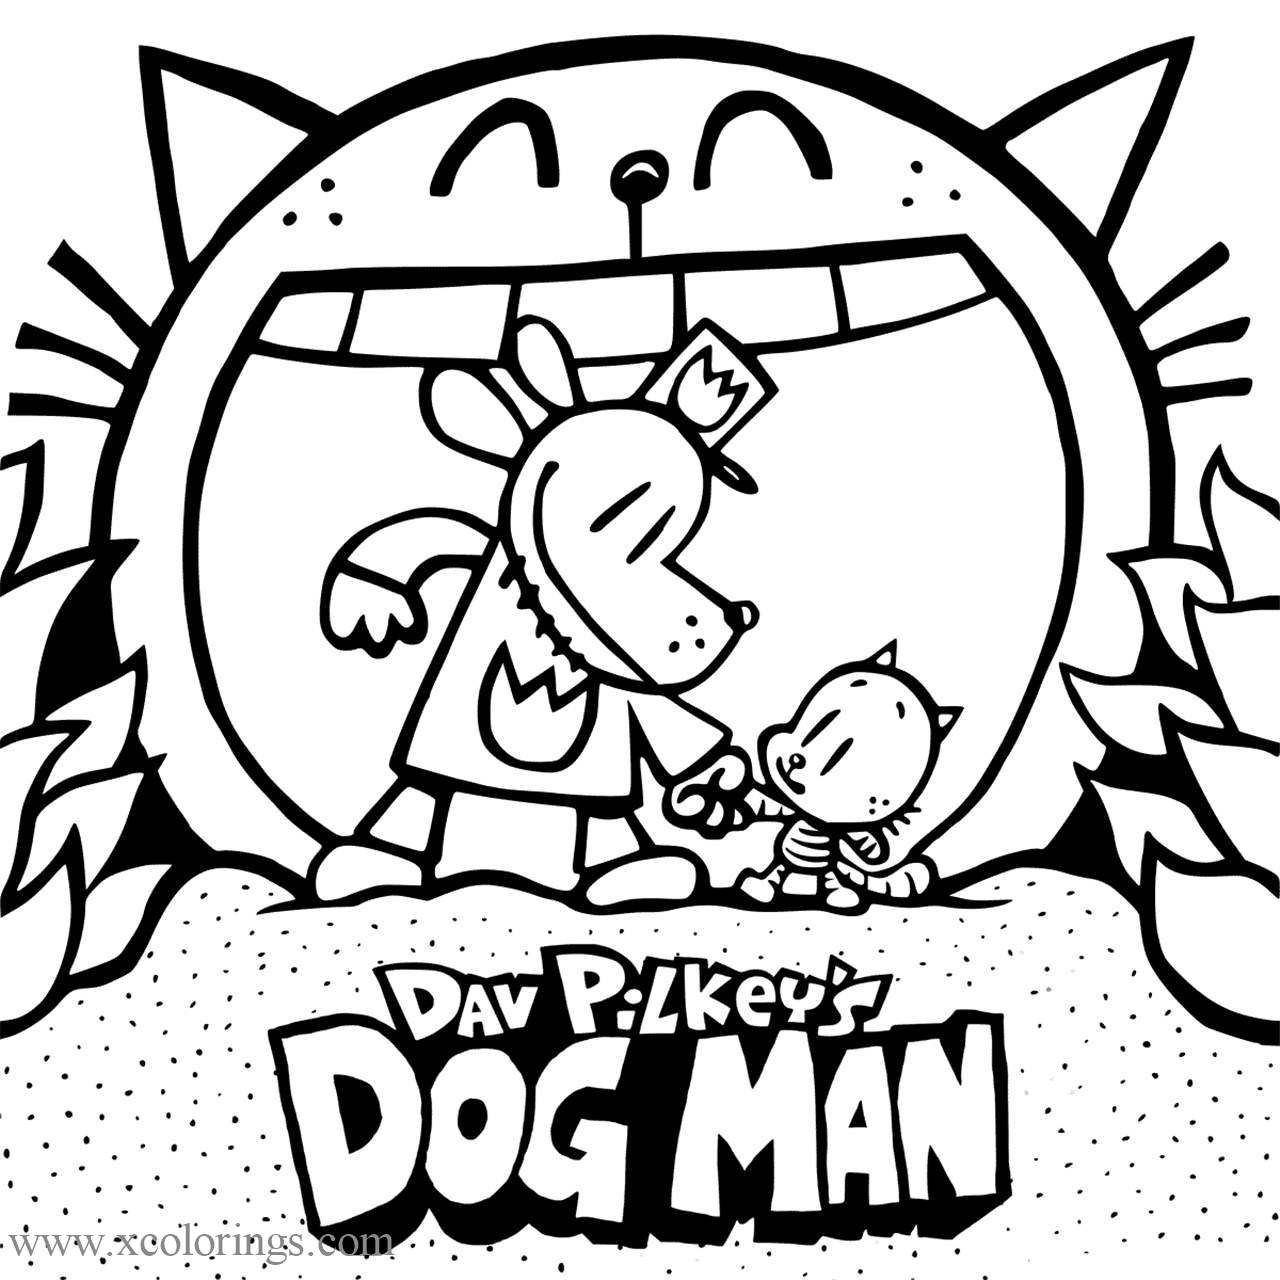 Dogman Coloring Pages For Kids Coloring Pages Coloring Pages For Kids Color